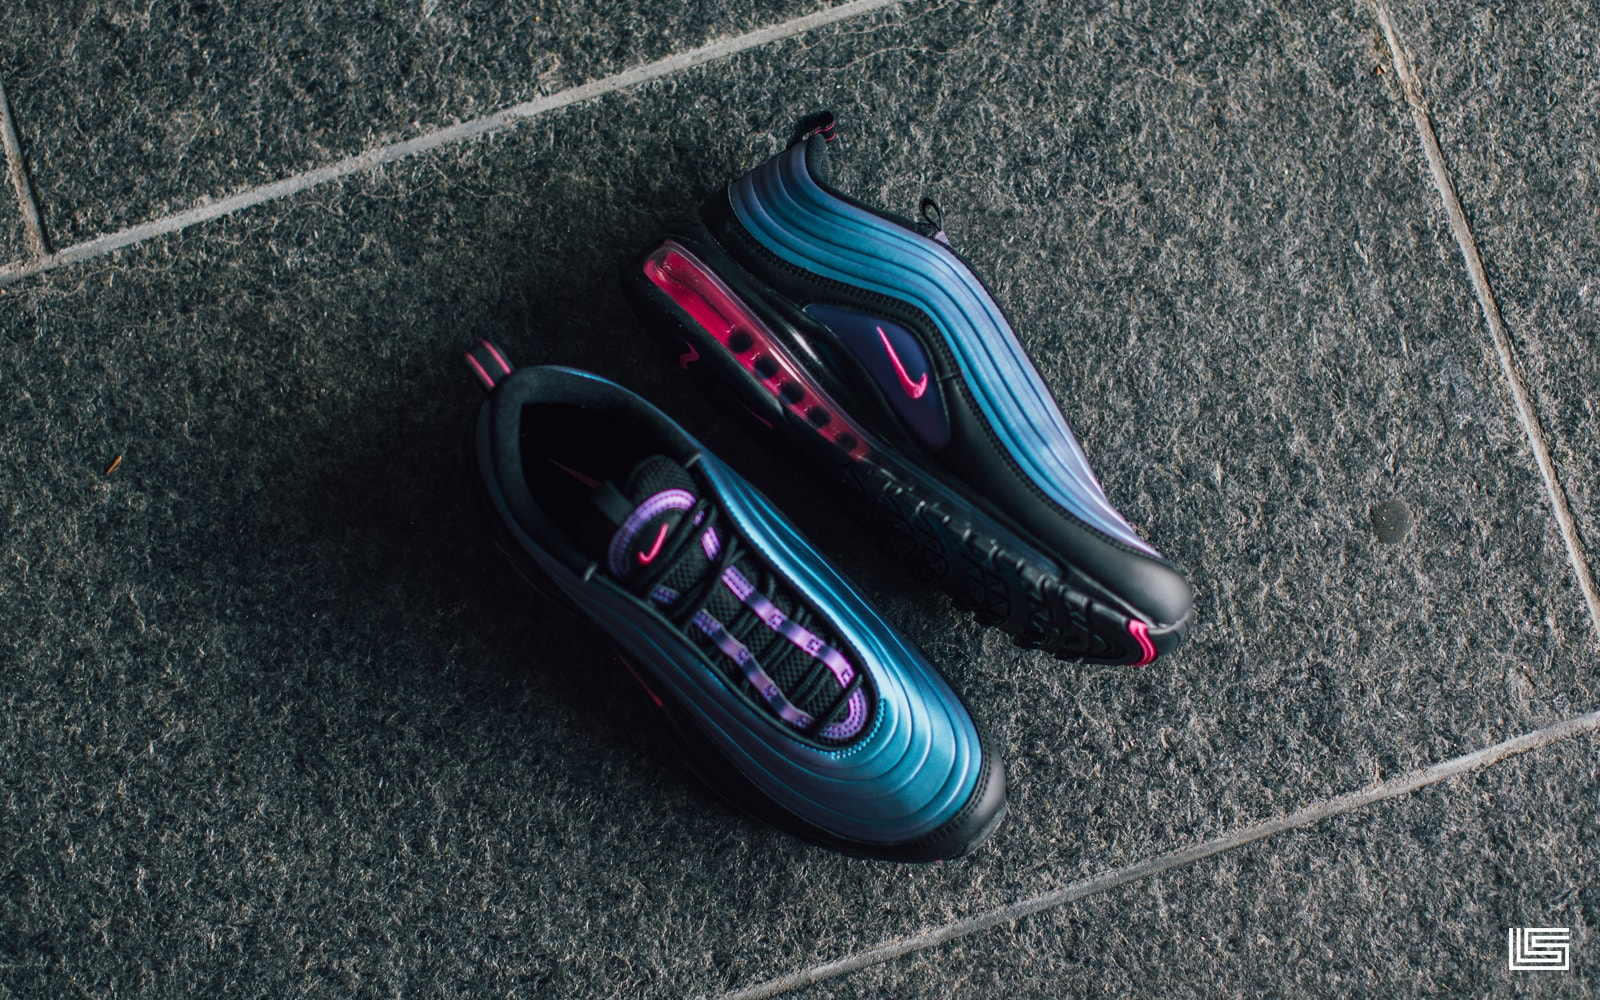 b7d2db4762 Unboxed Episode 50: Nike Air Max 97 'Throwback Future' Giveaway ...